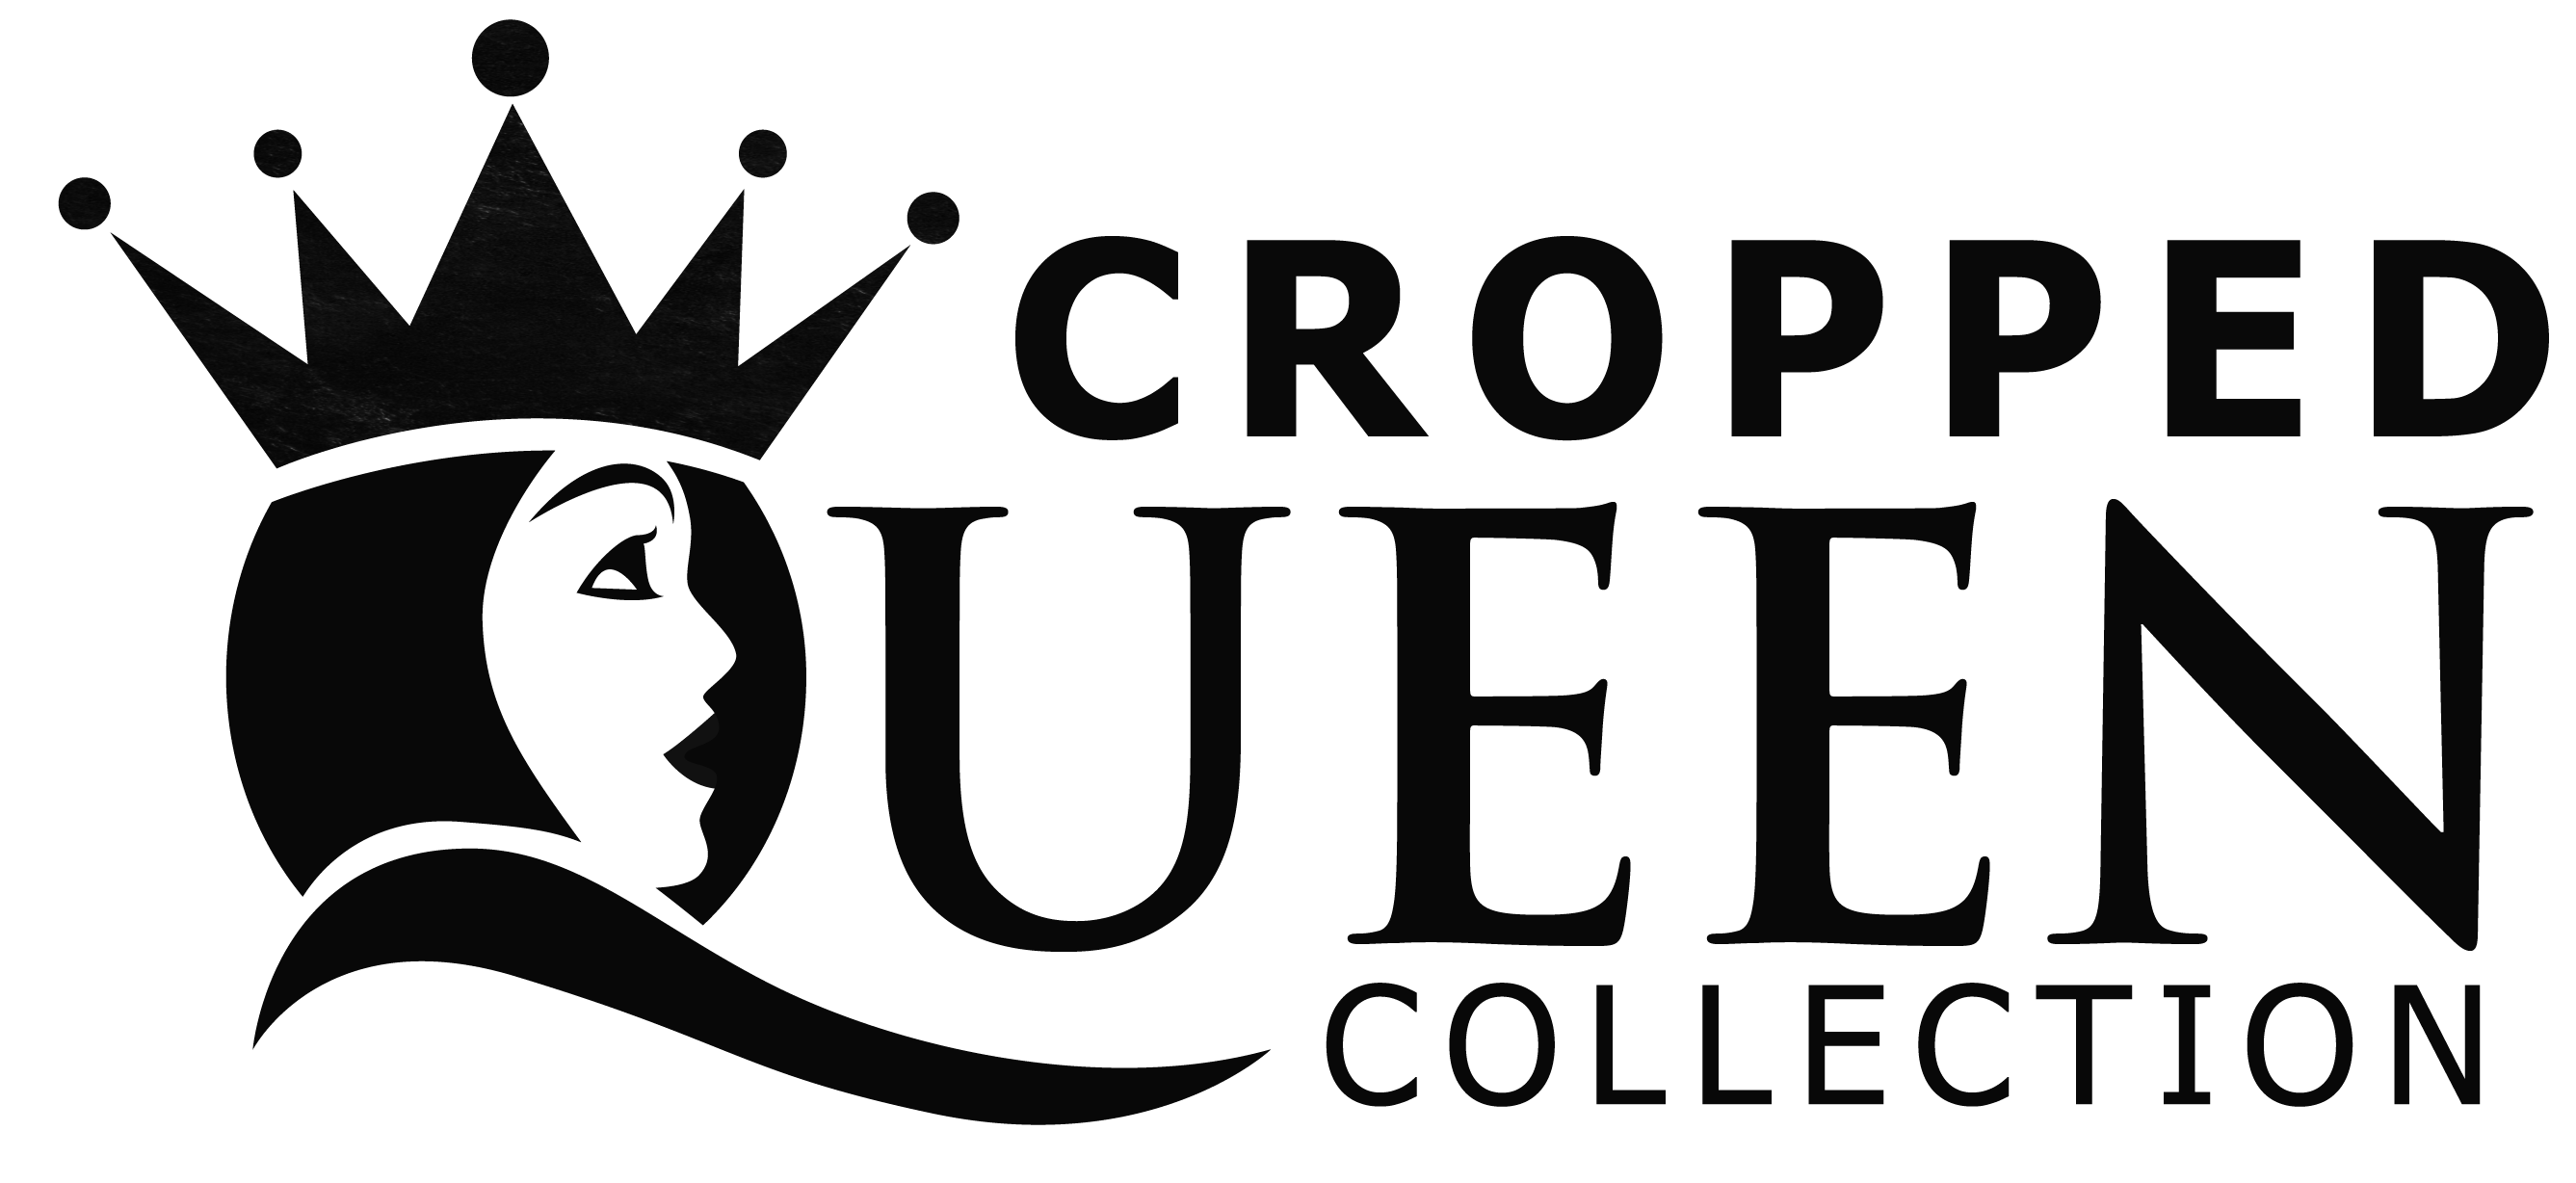 Cropped Queens Collection: Men's & Women's Fashion Clothing | Buy Clothes Online